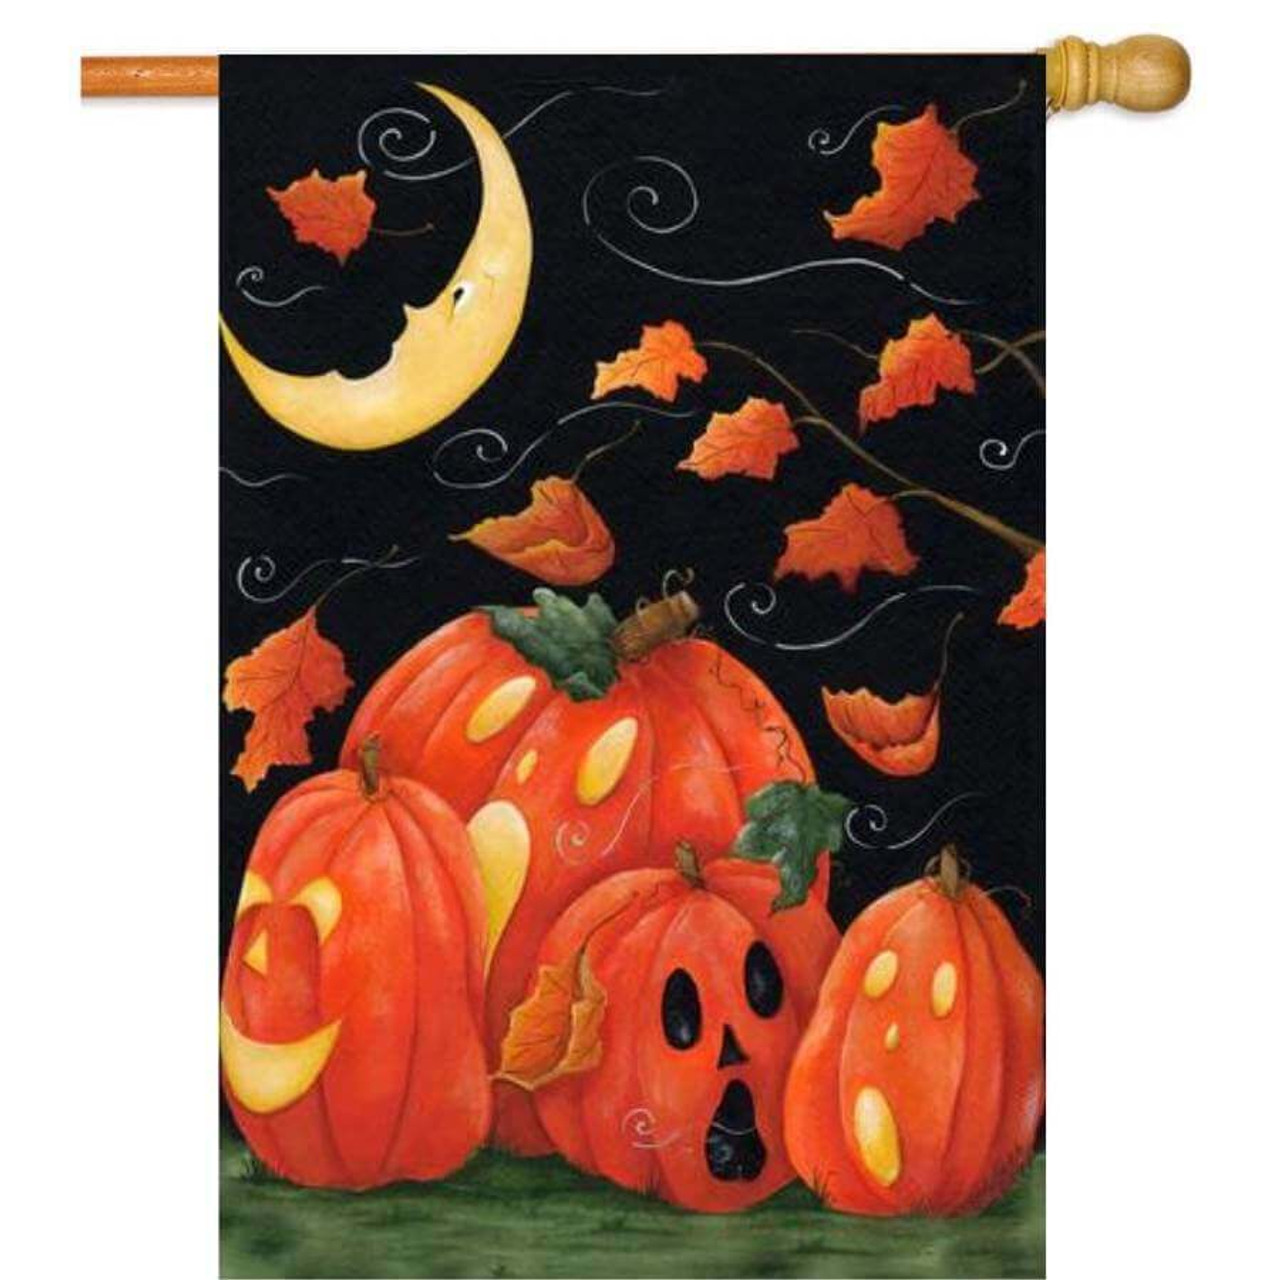 A Halloween flag with a black background. The bottom half has Orange pumpkins with carved faces on grass. The top half has orange leaves flying in the wind and a yellow crescent moon with a face in the top left corner